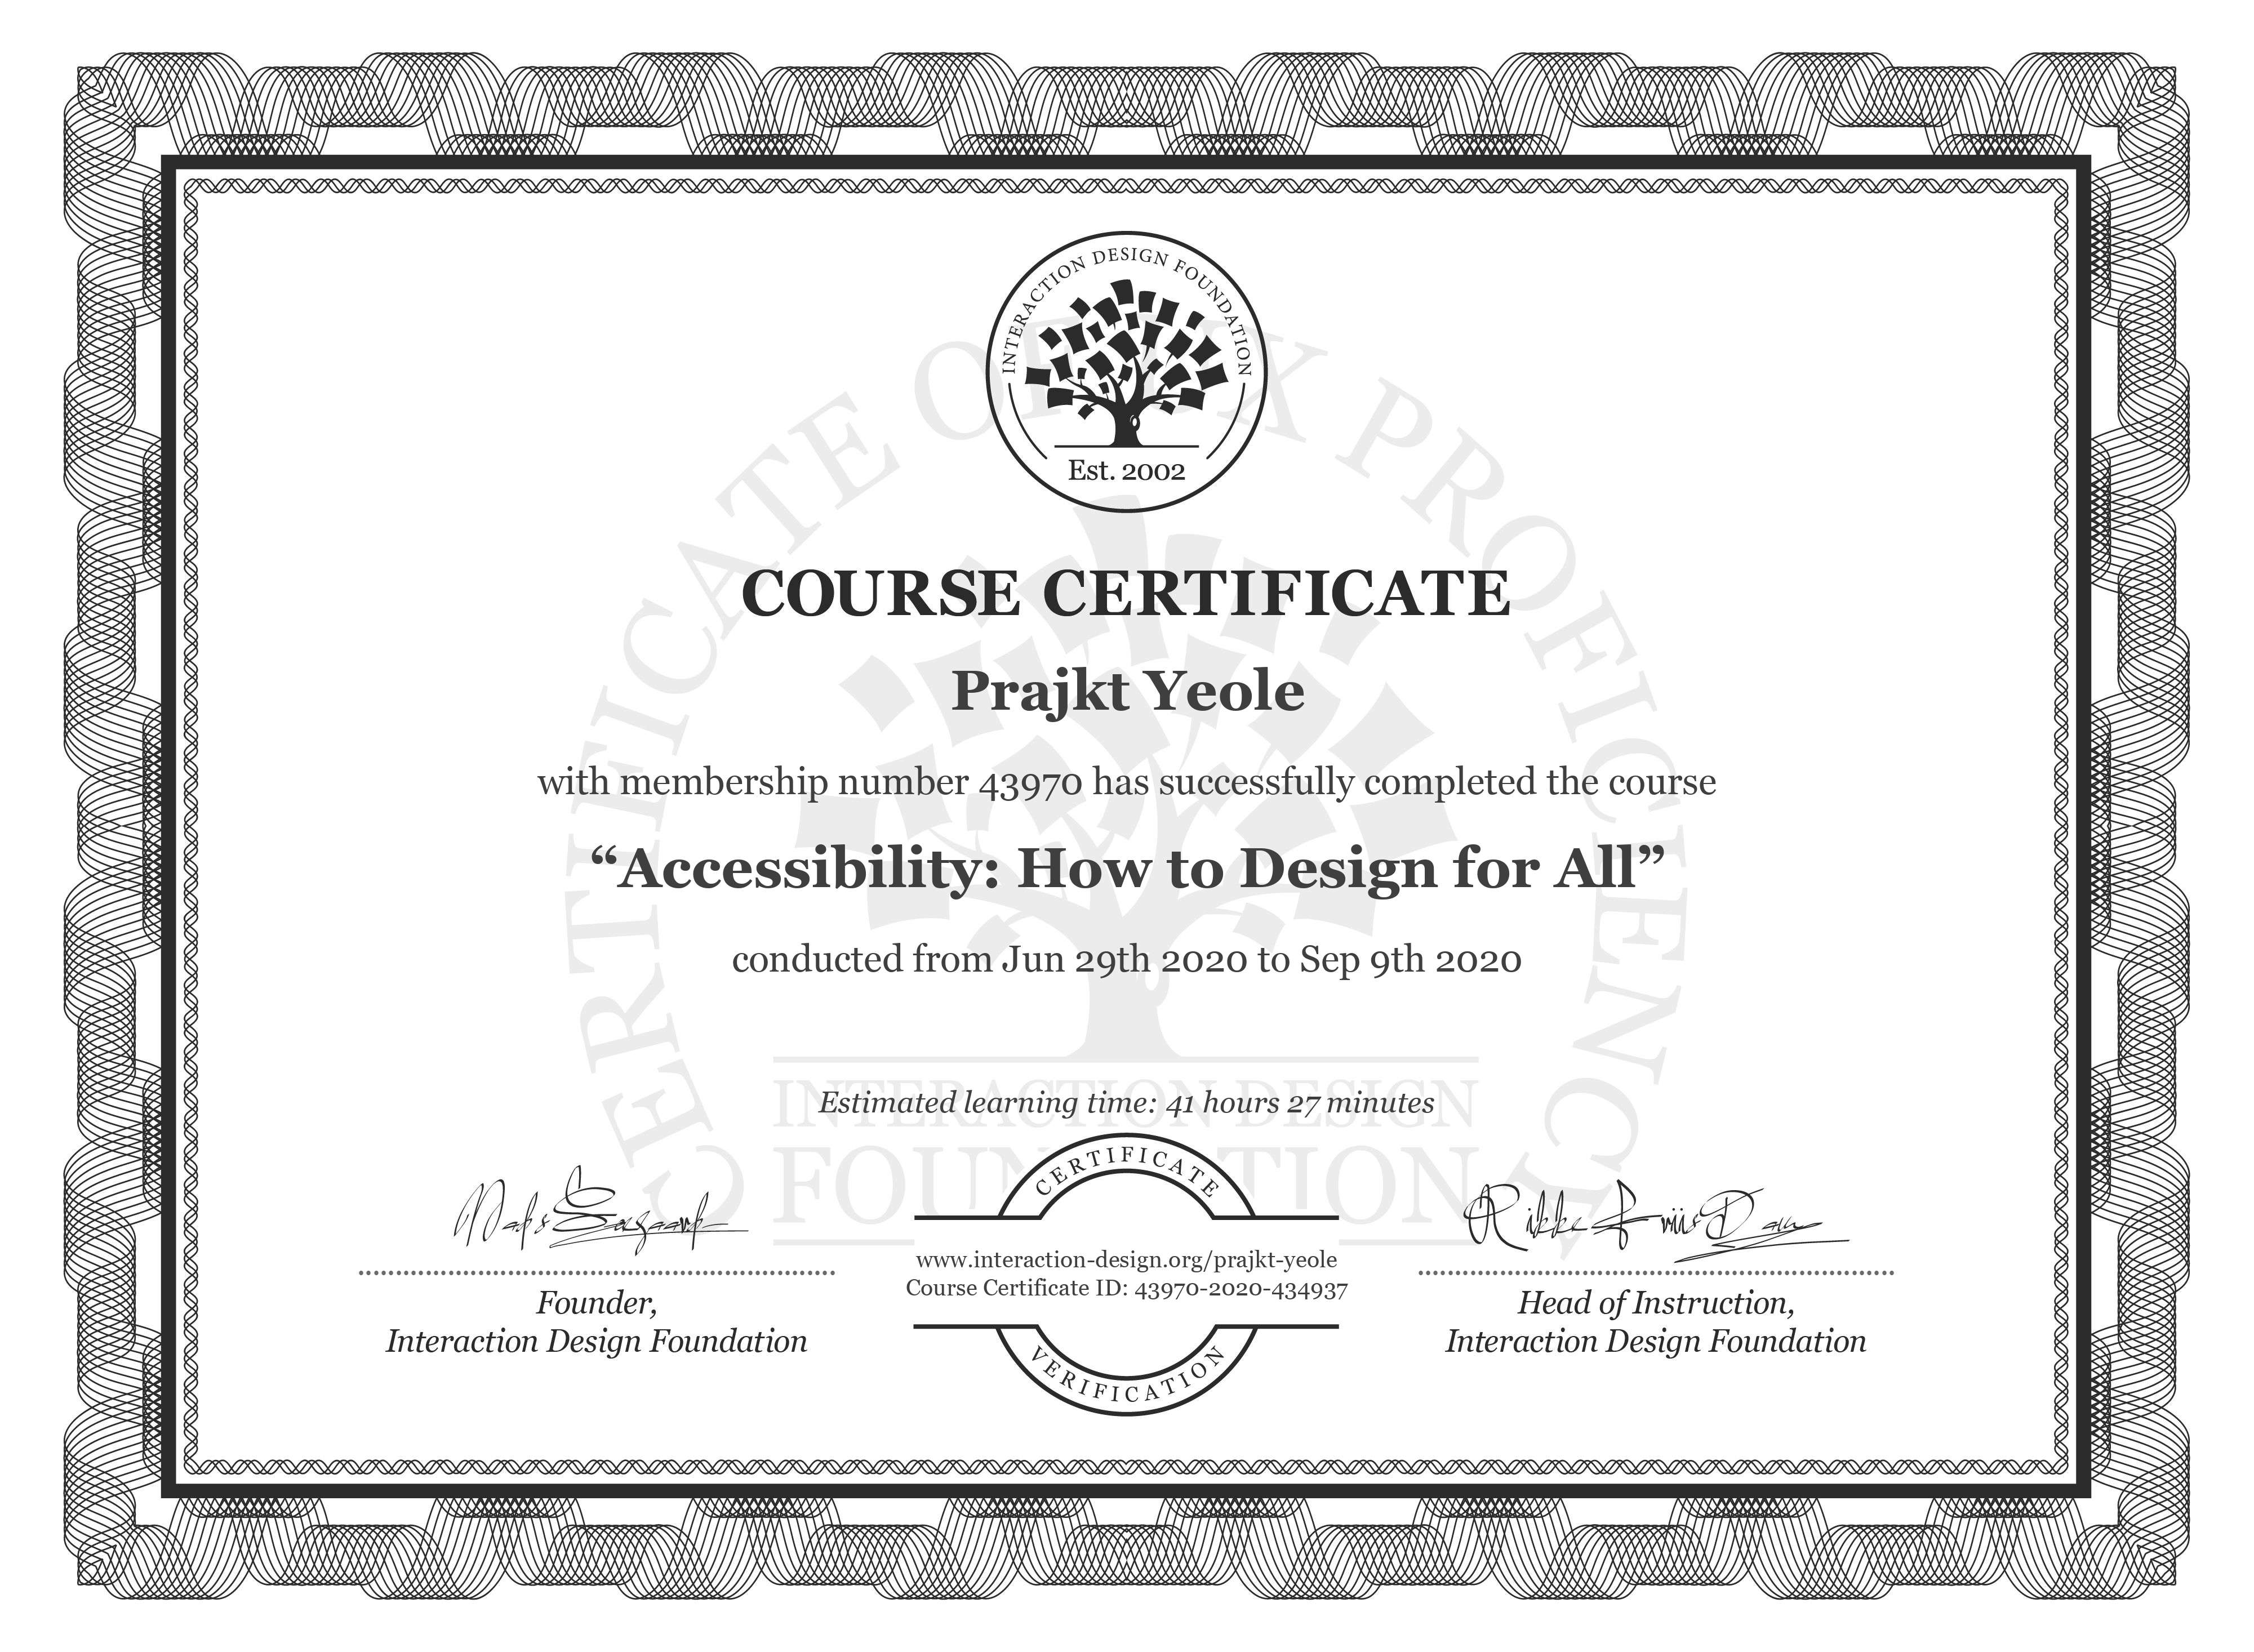 Prajkt Yeole's Course Certificate: Accessibility: How to Design for All